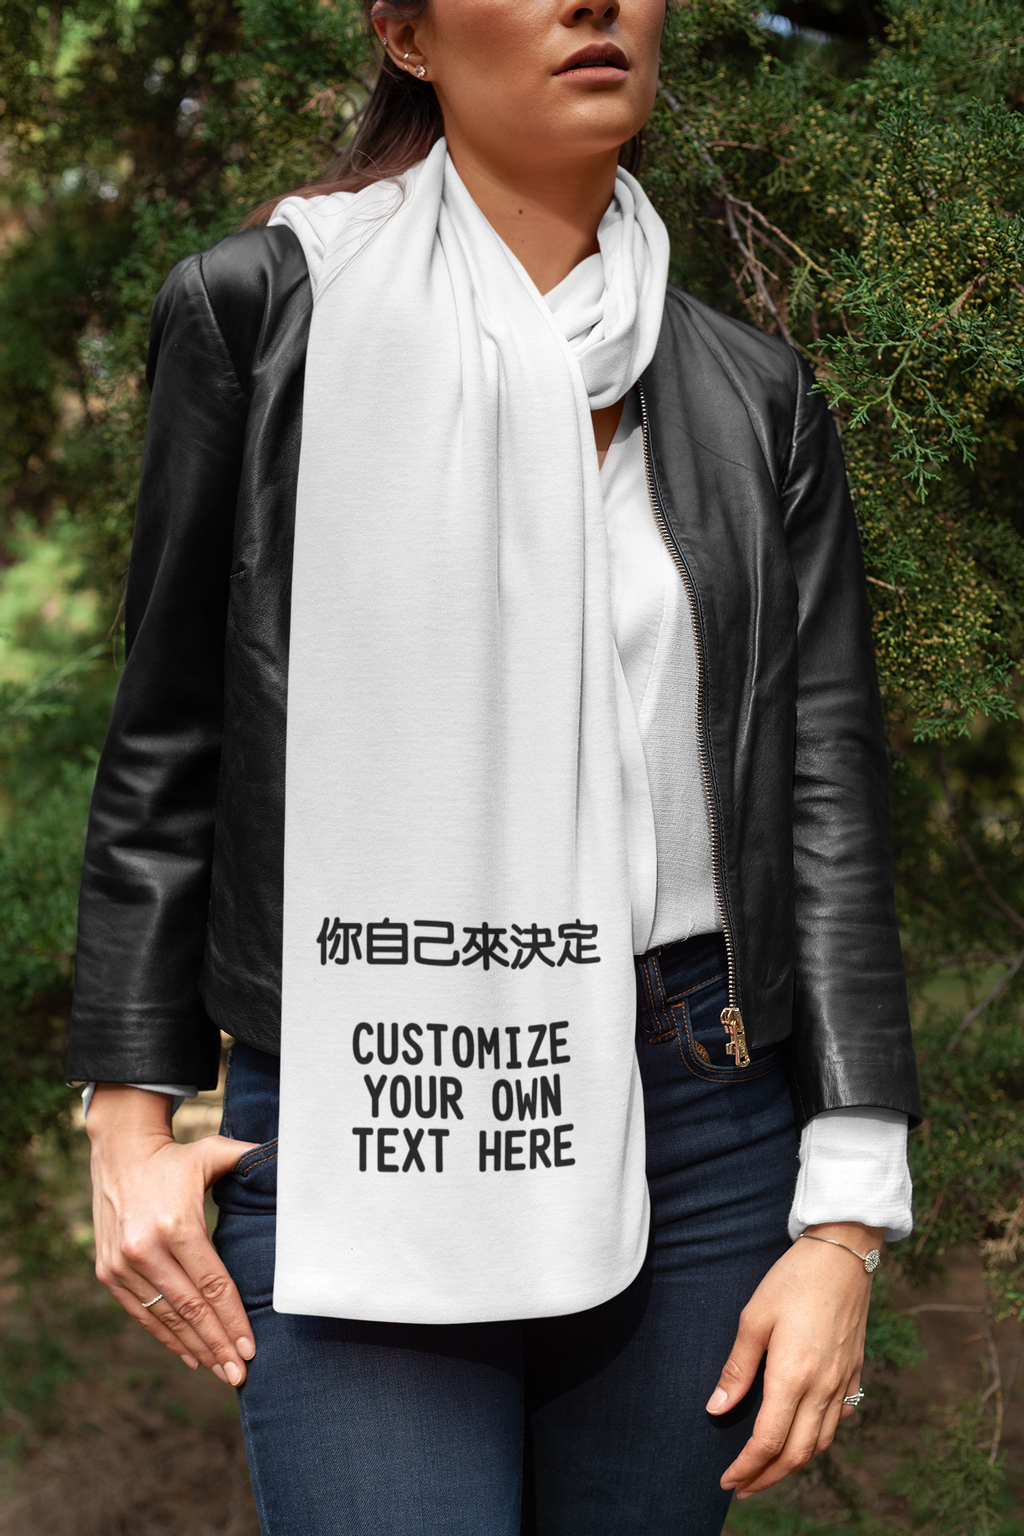 scarf-mockup-featuring-a-woman-with-a-leather-jacket-posing-by-some-bushes-25677.png